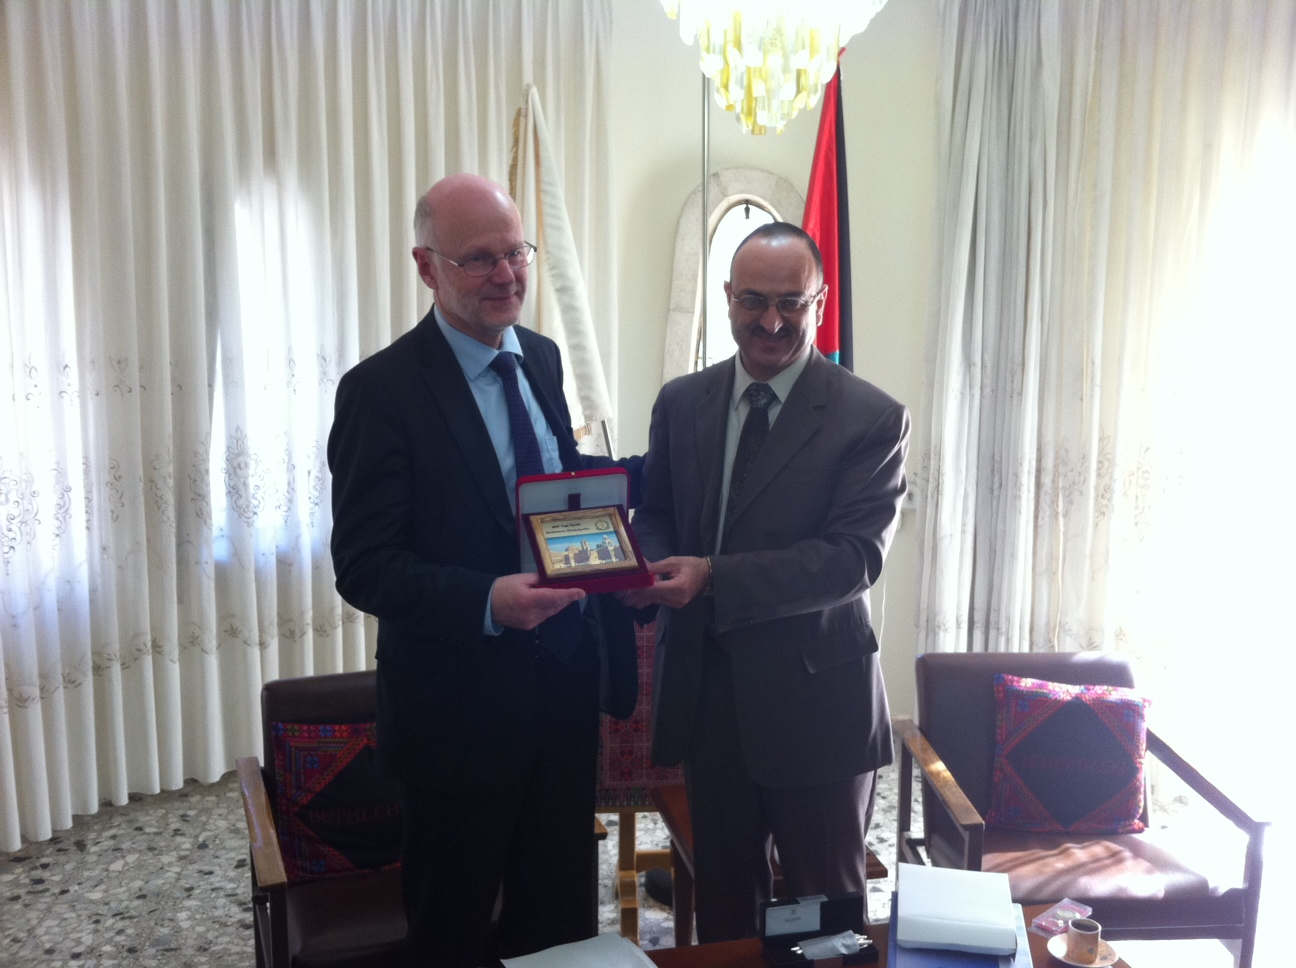 Staffan NilssonmMeeting Bethlehem deputy mayor George Saadeh